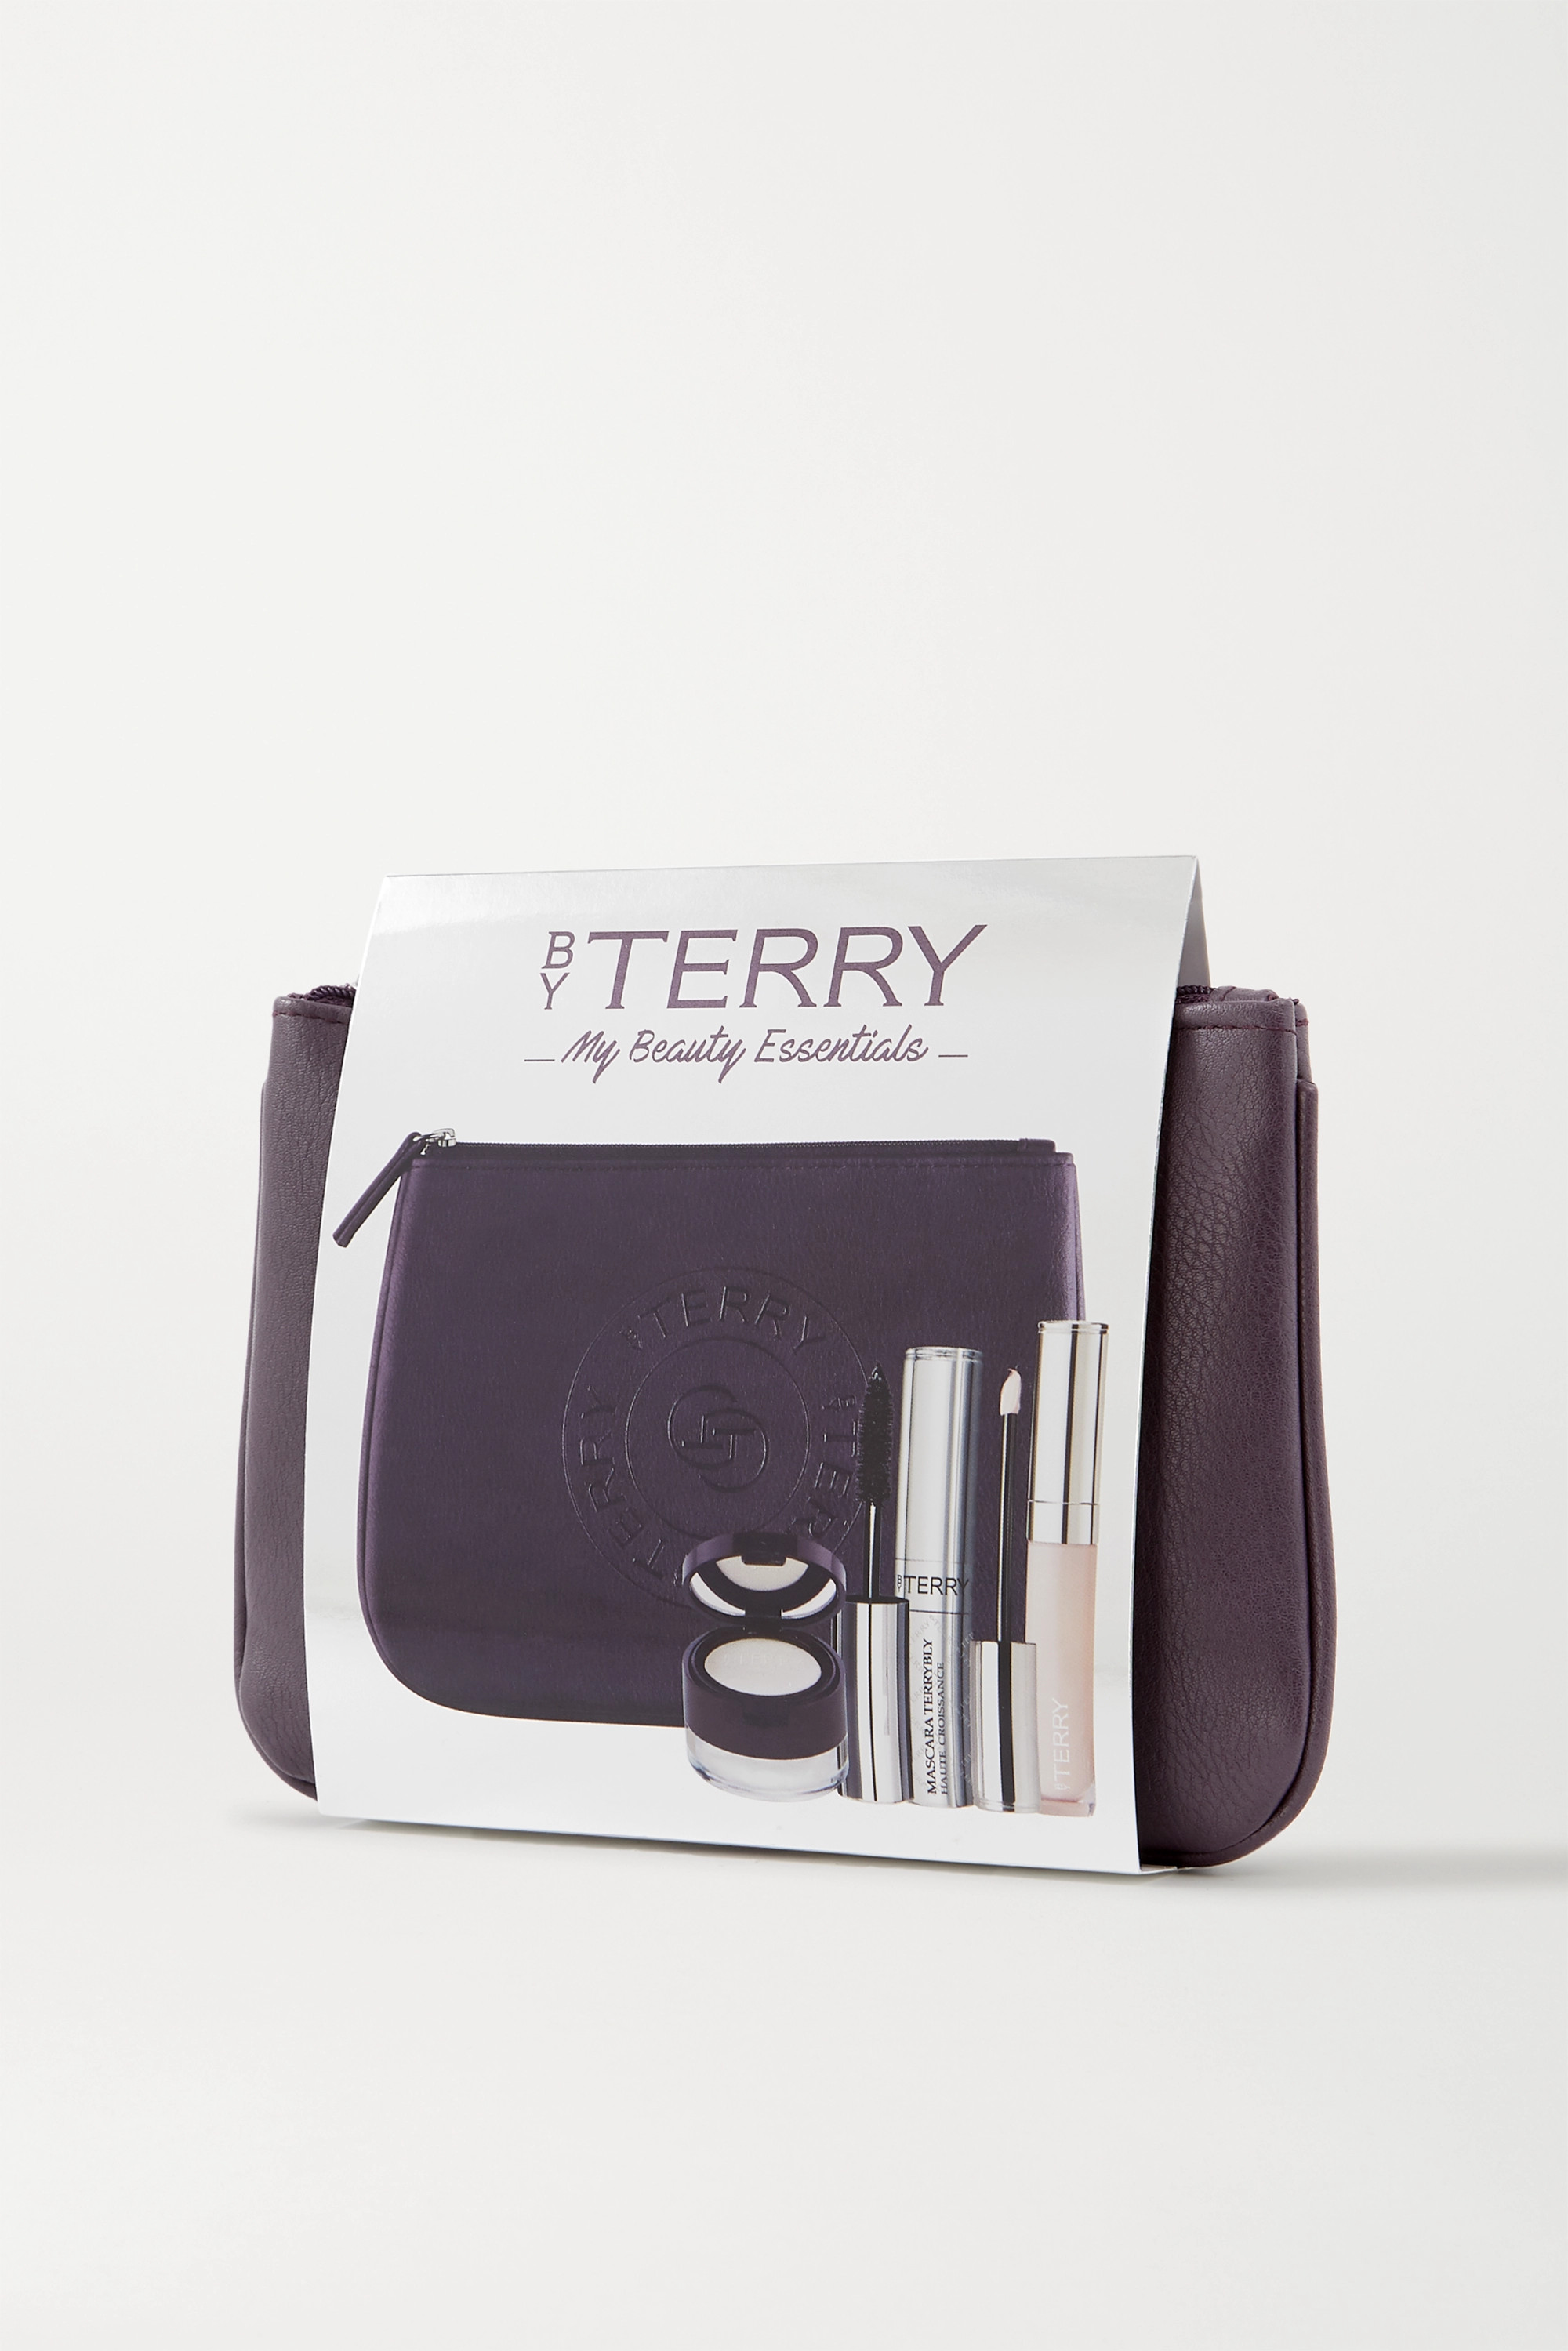 BY TERRY My Beauty Essentials Set